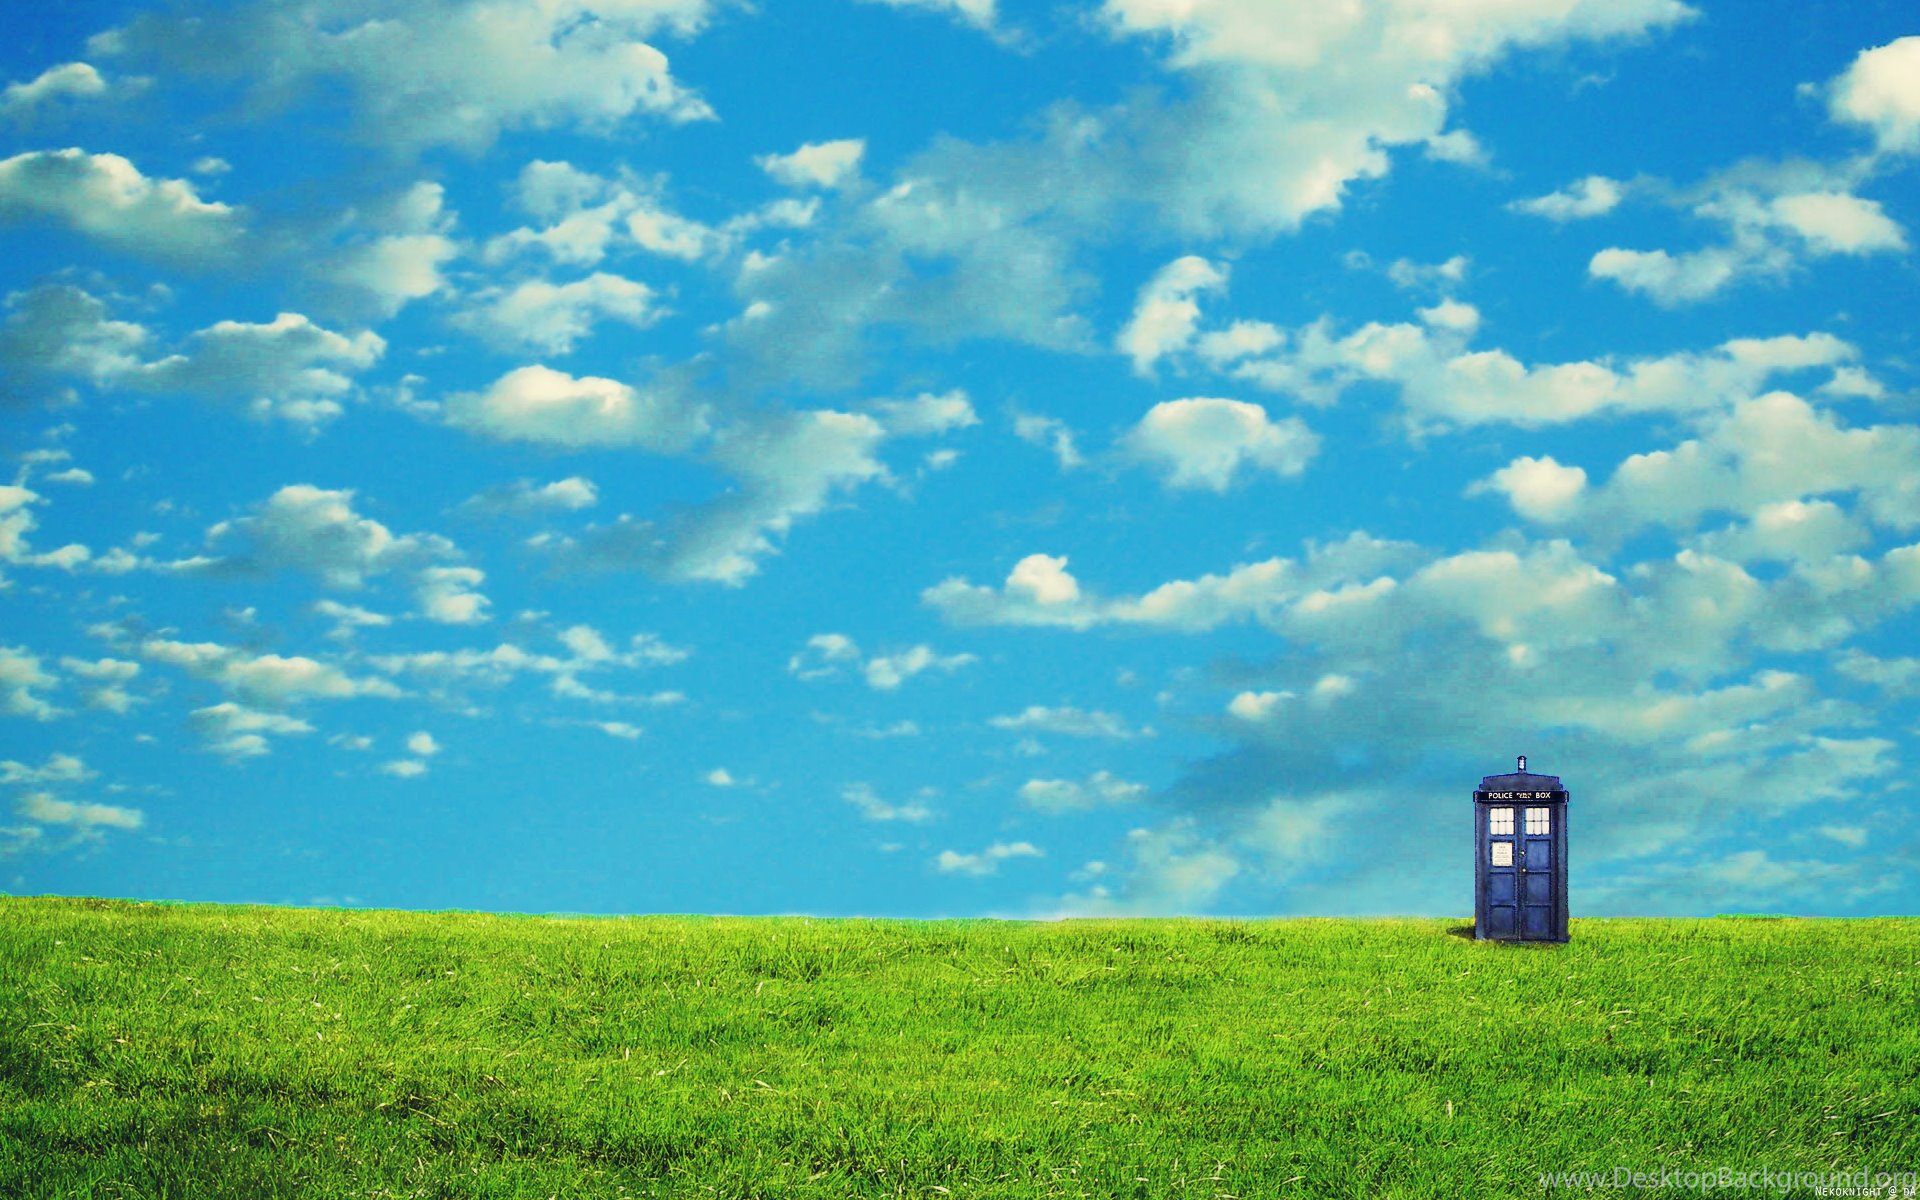 Tardis Backgrounds Landscape Art Full Hd Desktop Wallpapers Wallinda Desktop Background